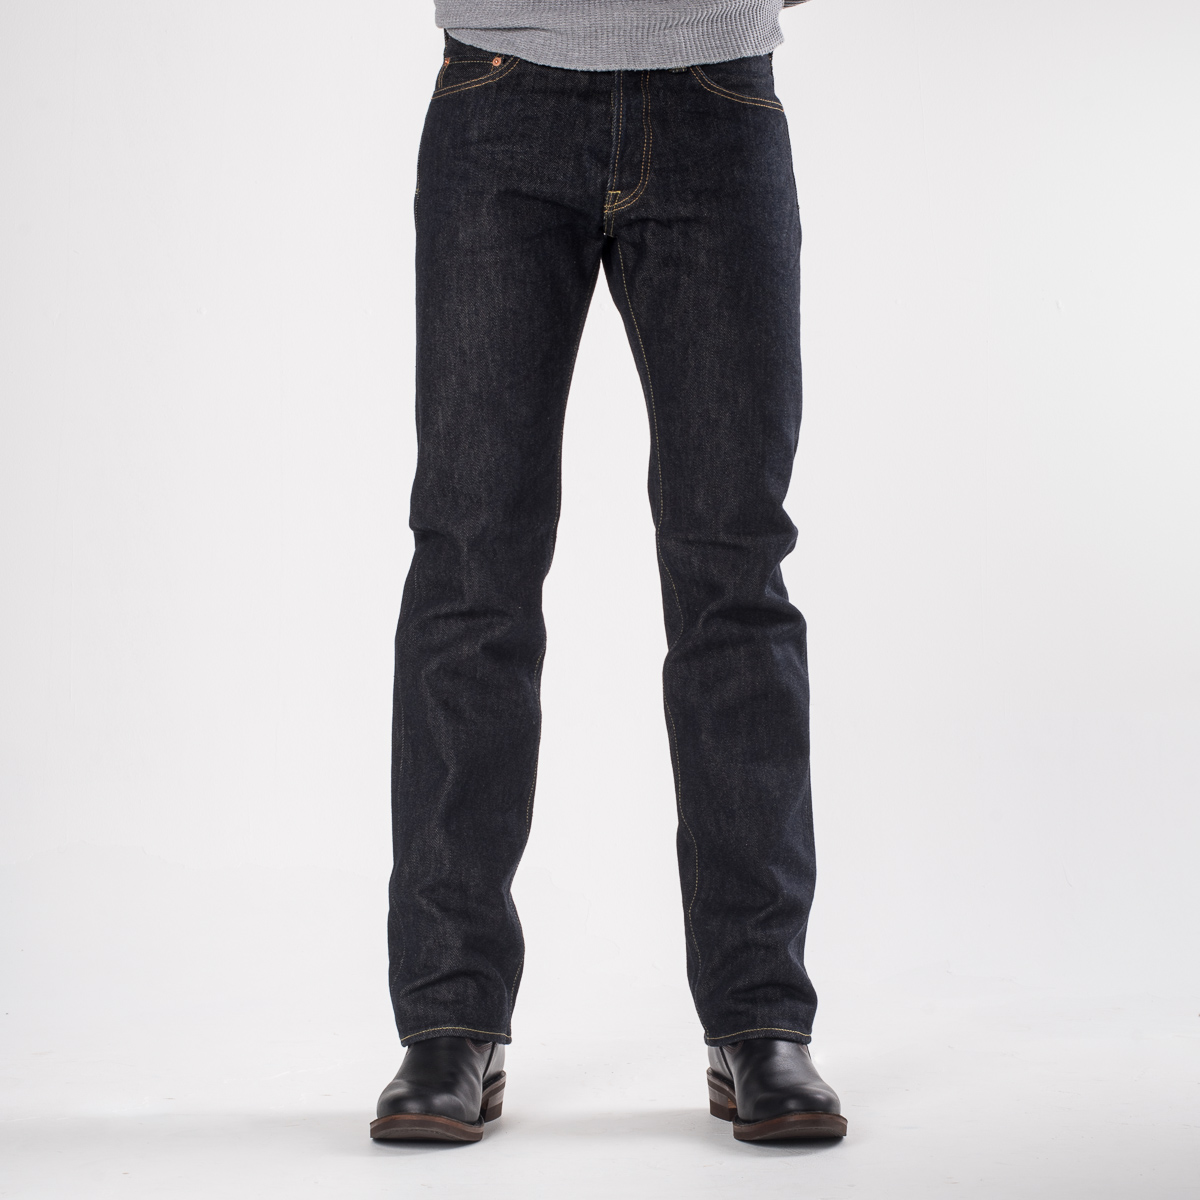 e42c07829c2 Our Cuts (Jeans) - Iron Heart International